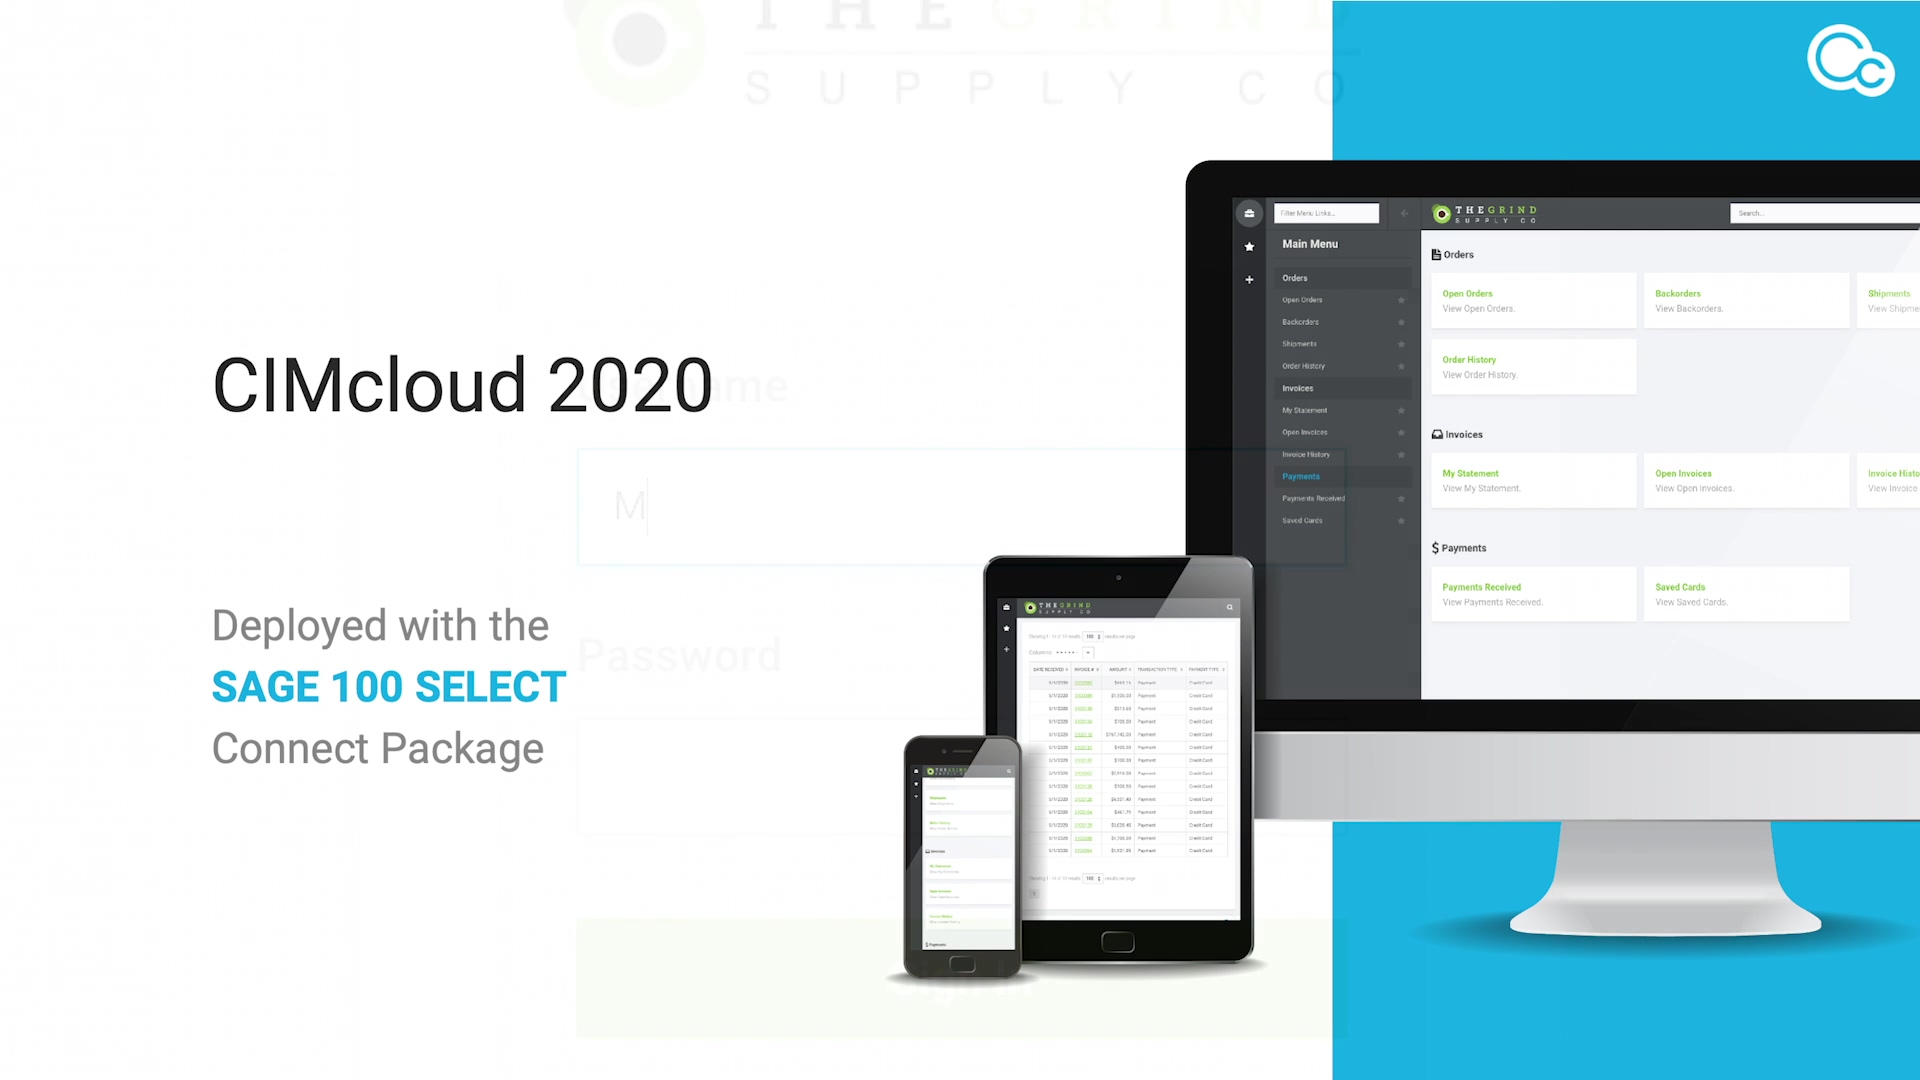 CIMcloud 2020 Select Customer Video Overview